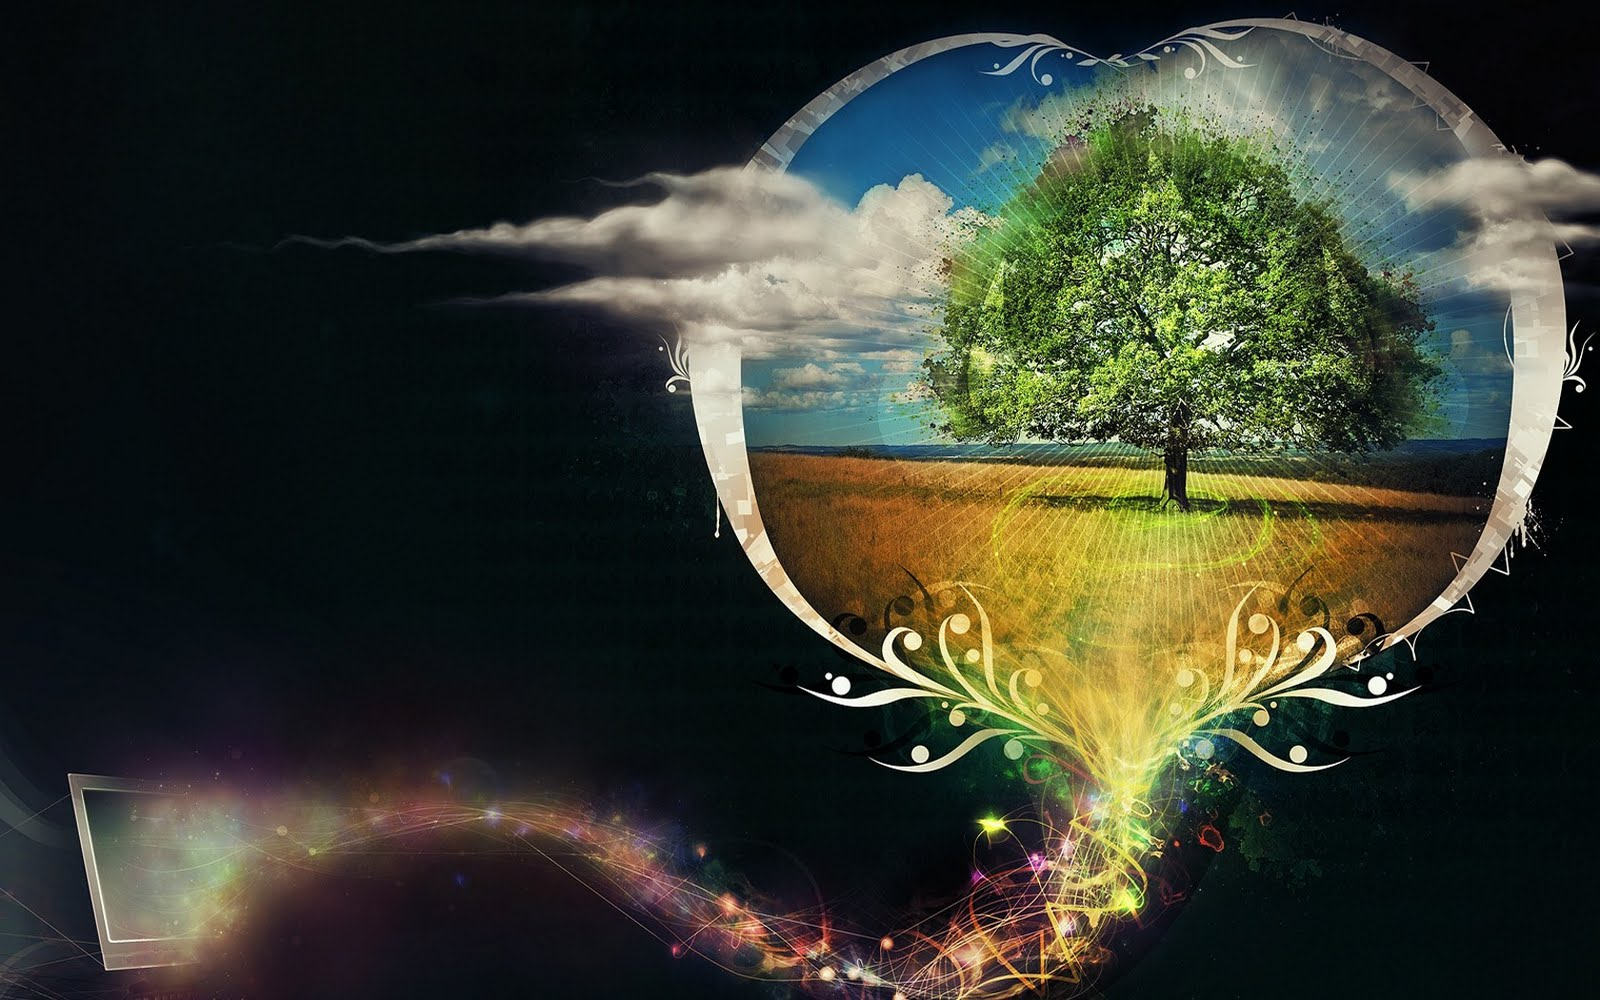 Strictly Wallpaper Imaginary Worlds Wallpapers 2